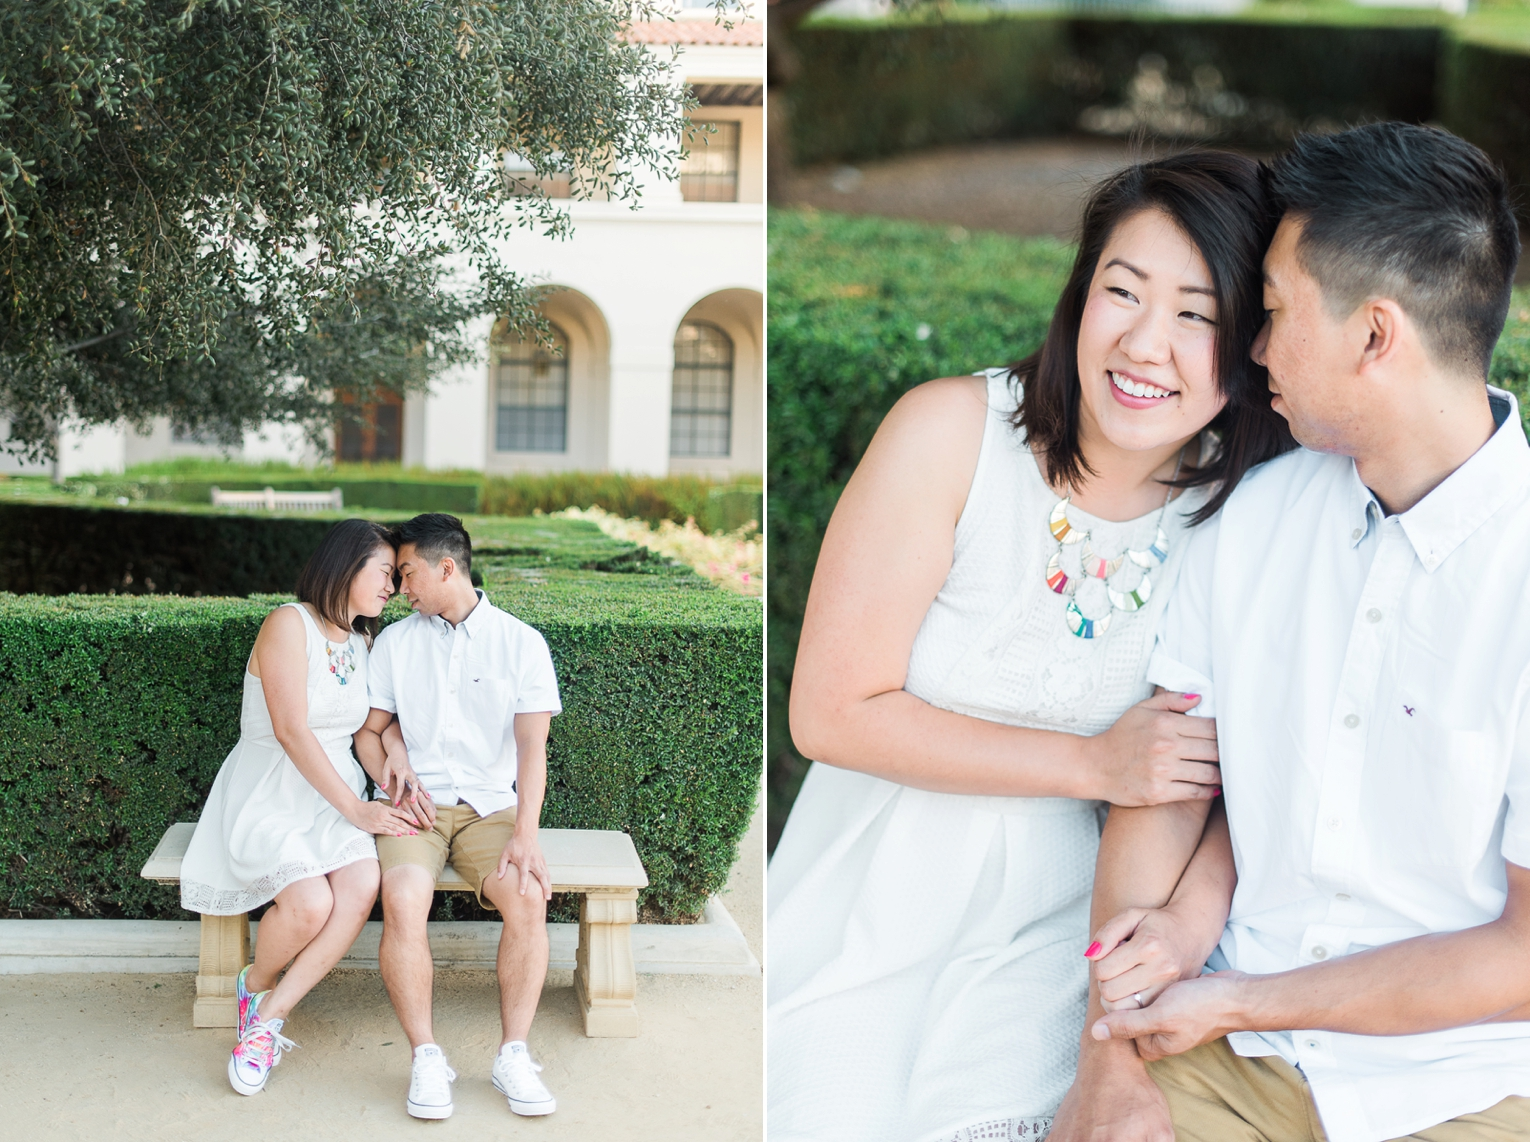 Old town Pasadena Engagement Photos | Brandi Welles Photographer_0003